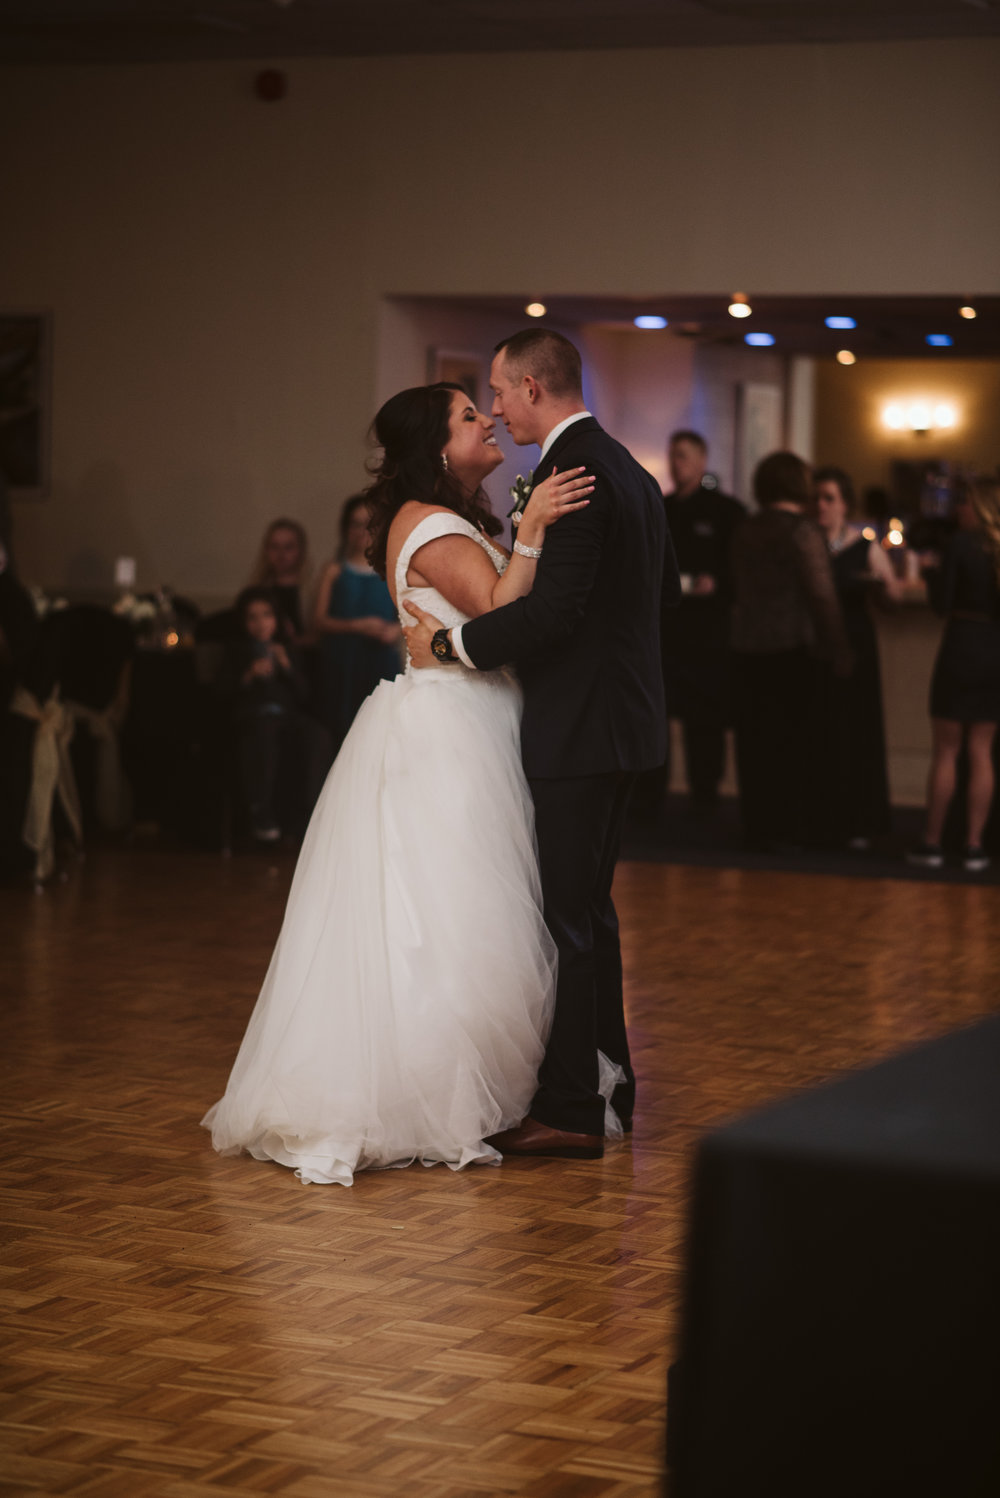 Bride and groom dancing during first dance